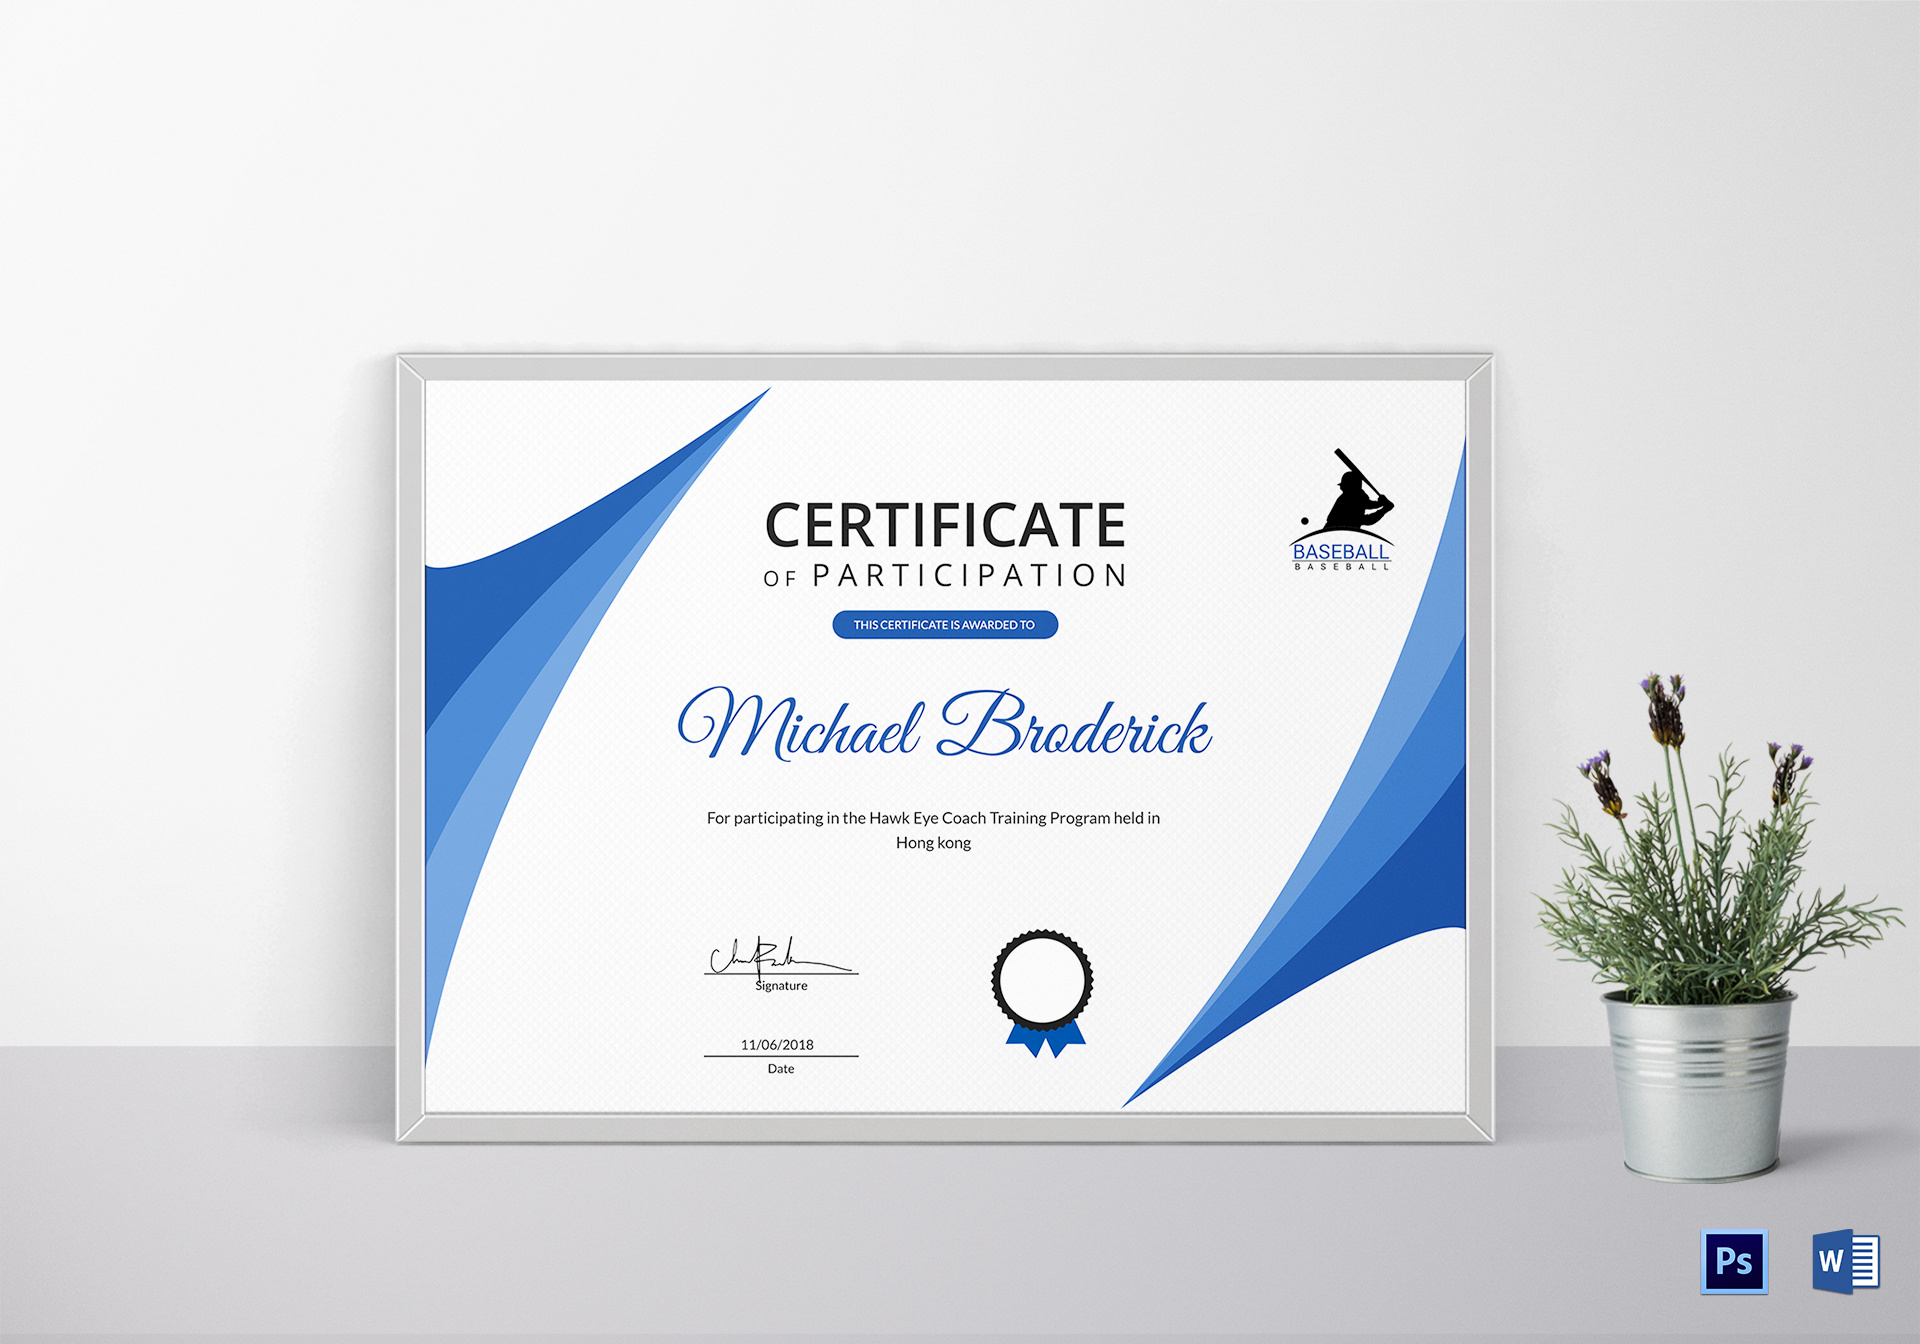 Certificate Of Coach Participation Design Template In Psd Intended For Templates For Certificates Of Participation